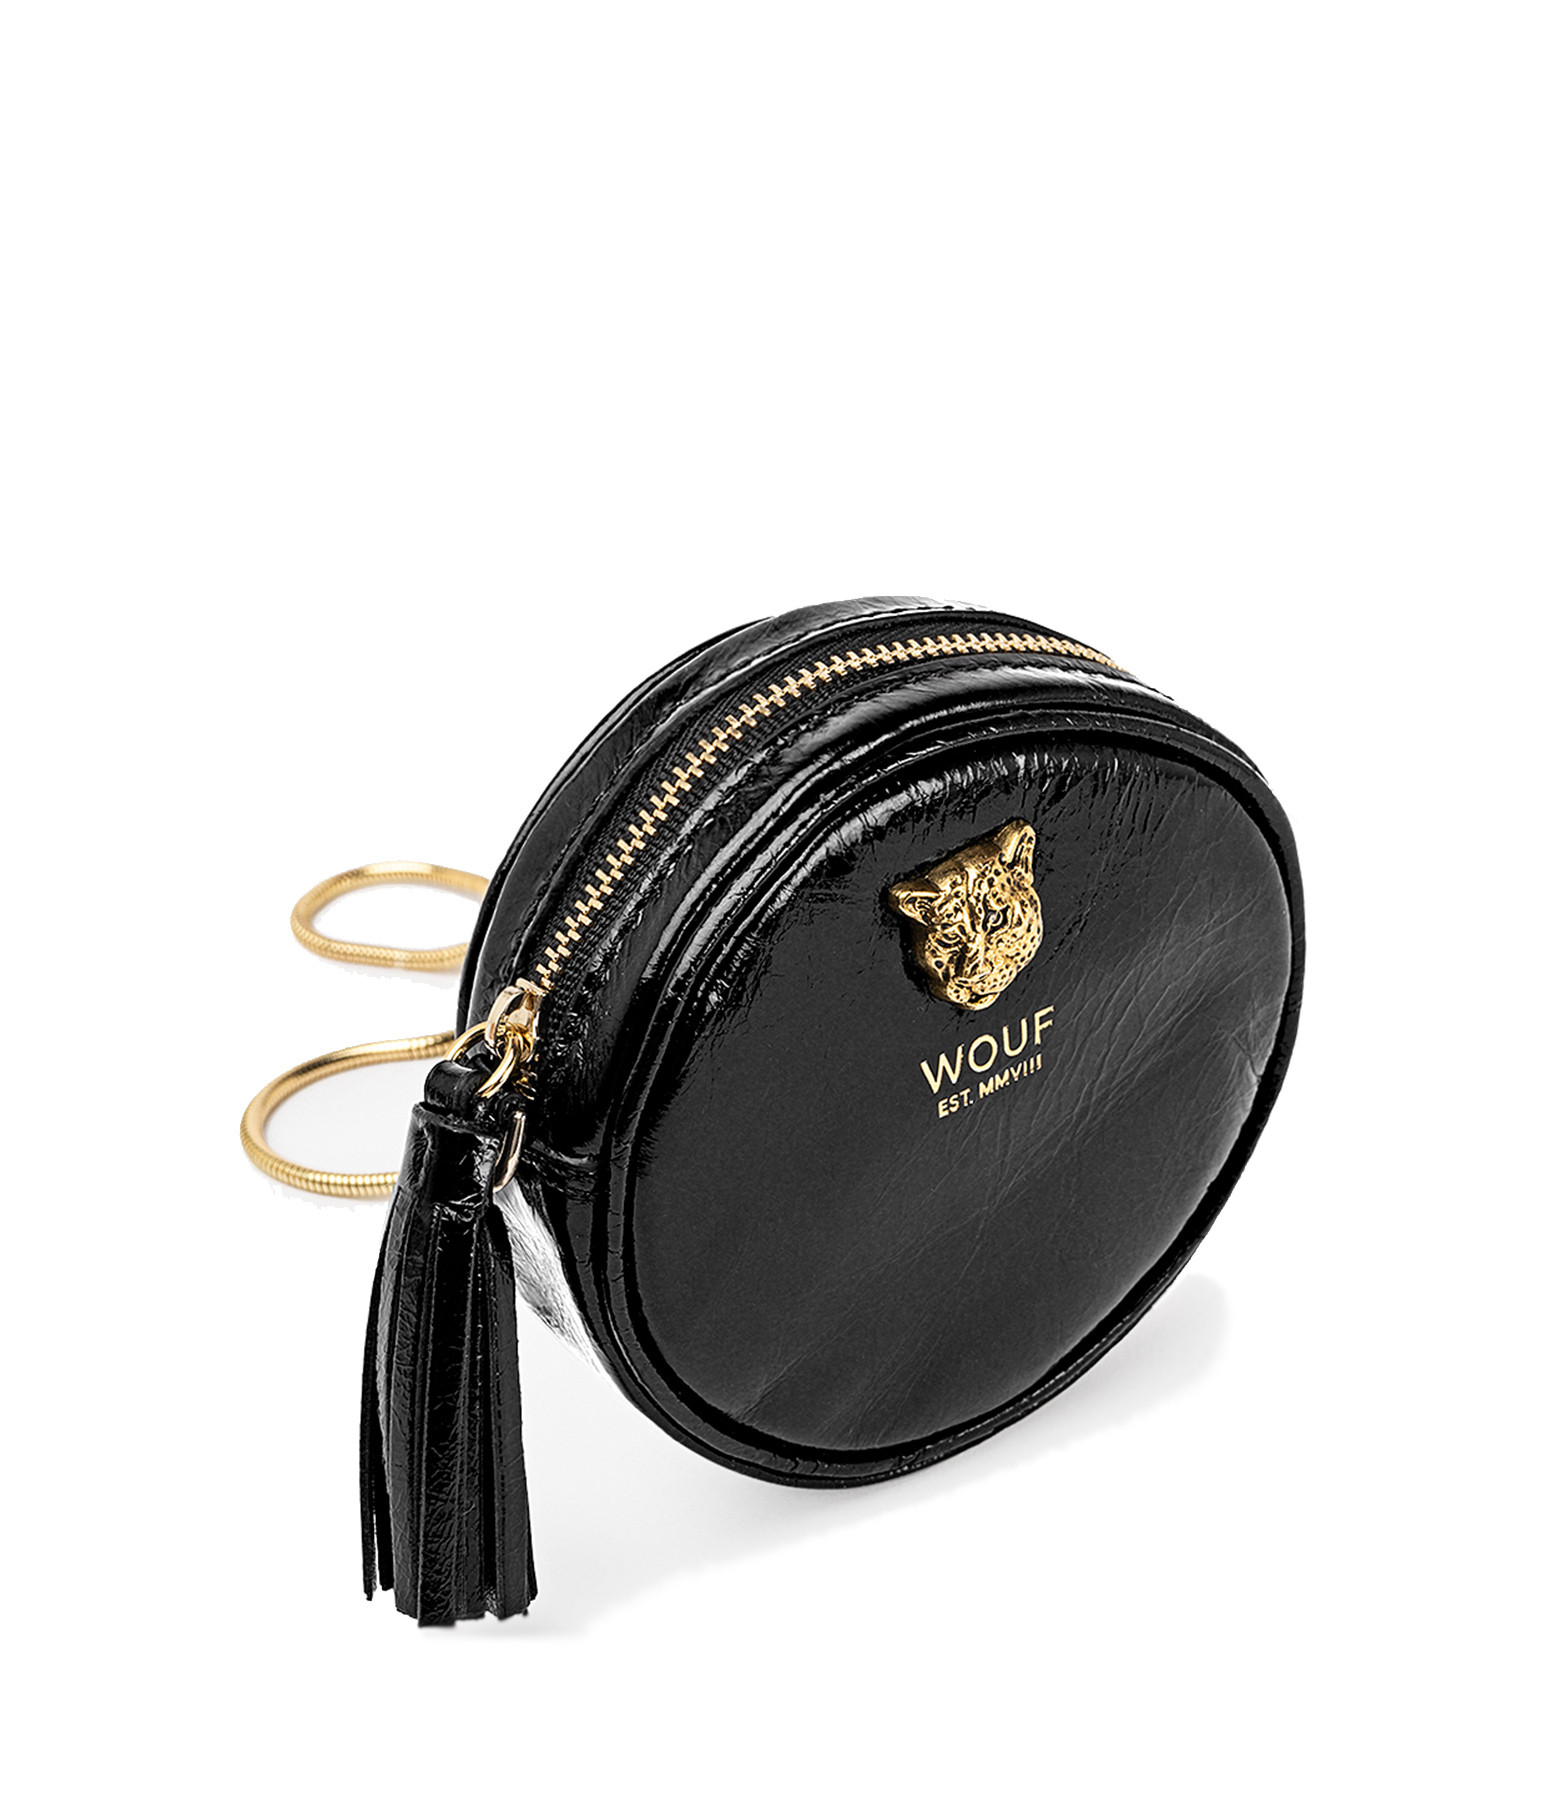 WOUF - Sac Rond Black Tiger